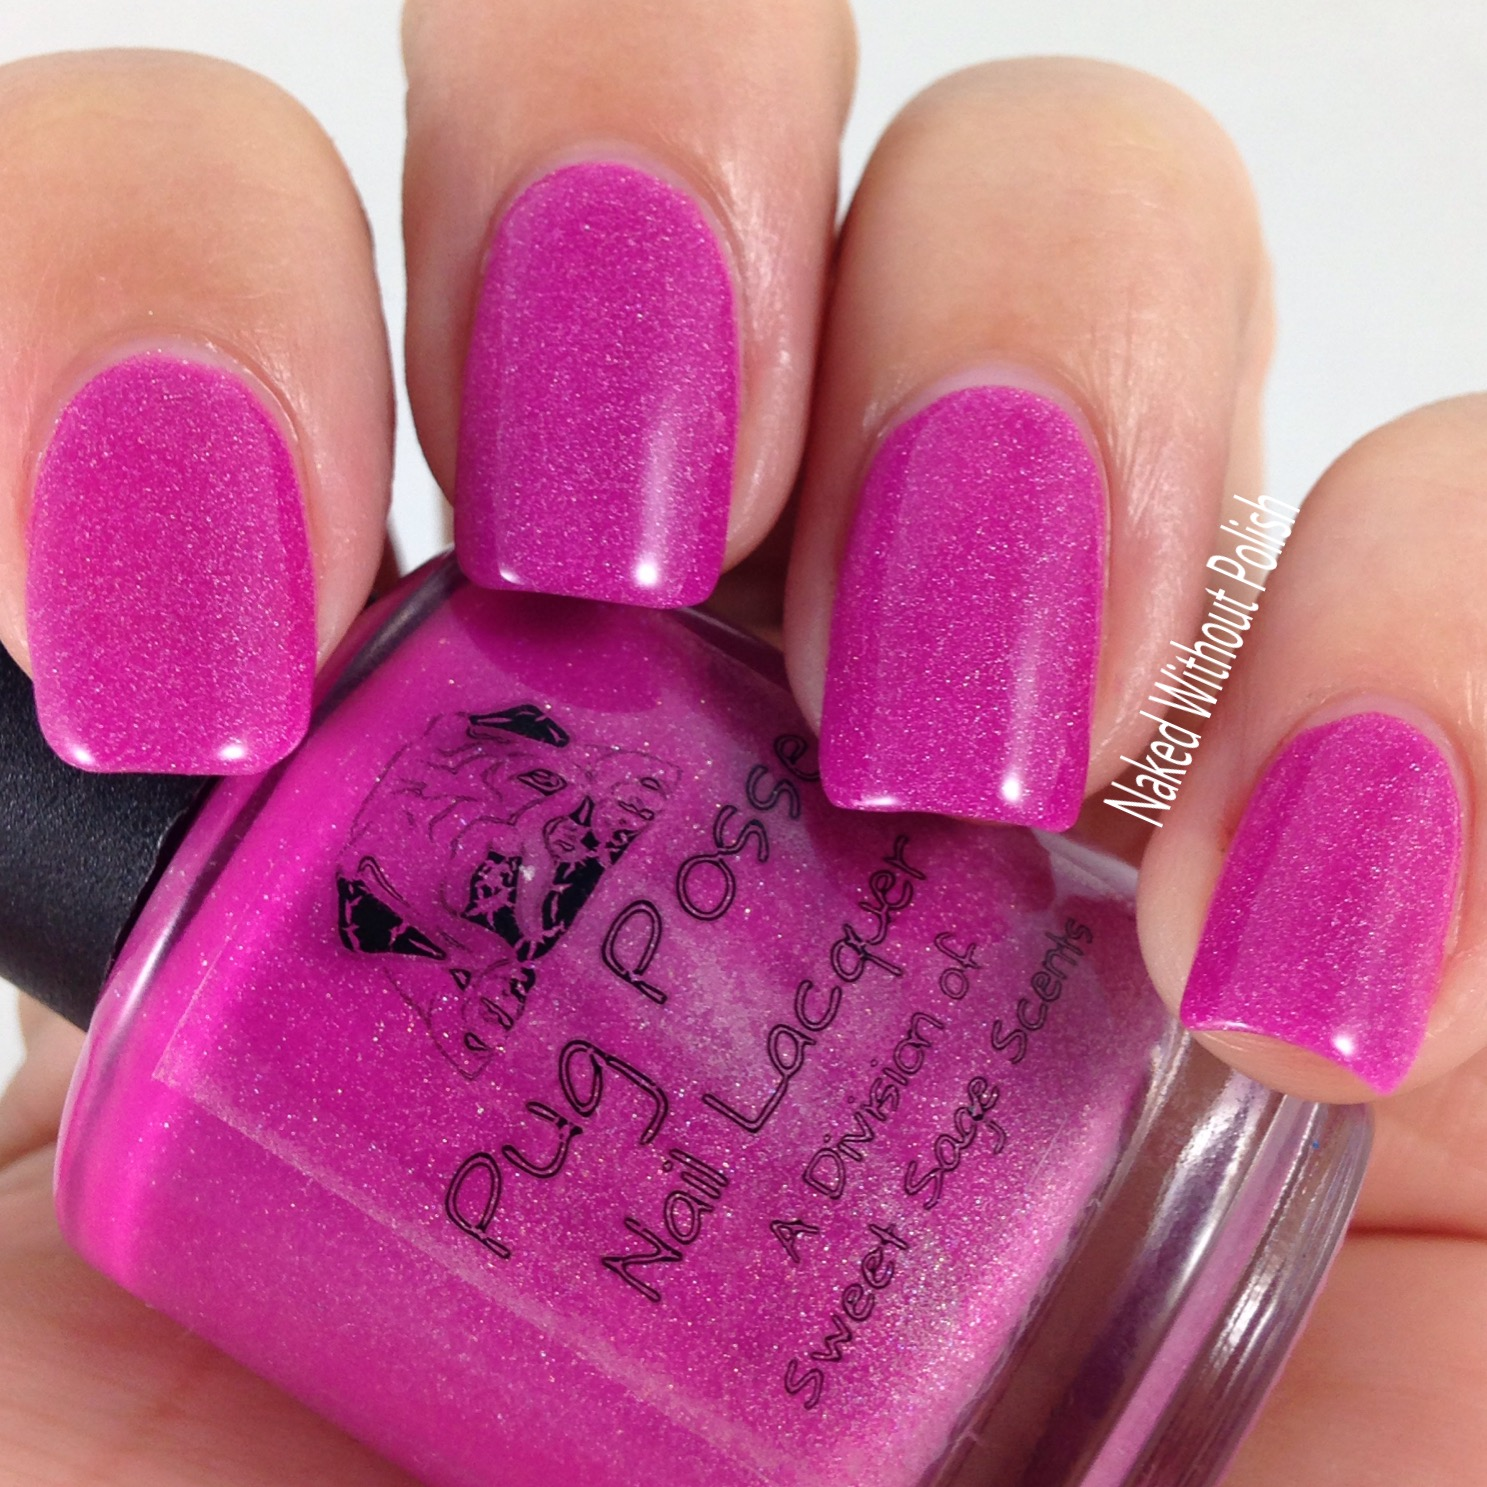 Pug-Posse-Nail-Lacquer-Loose-Lucy-6